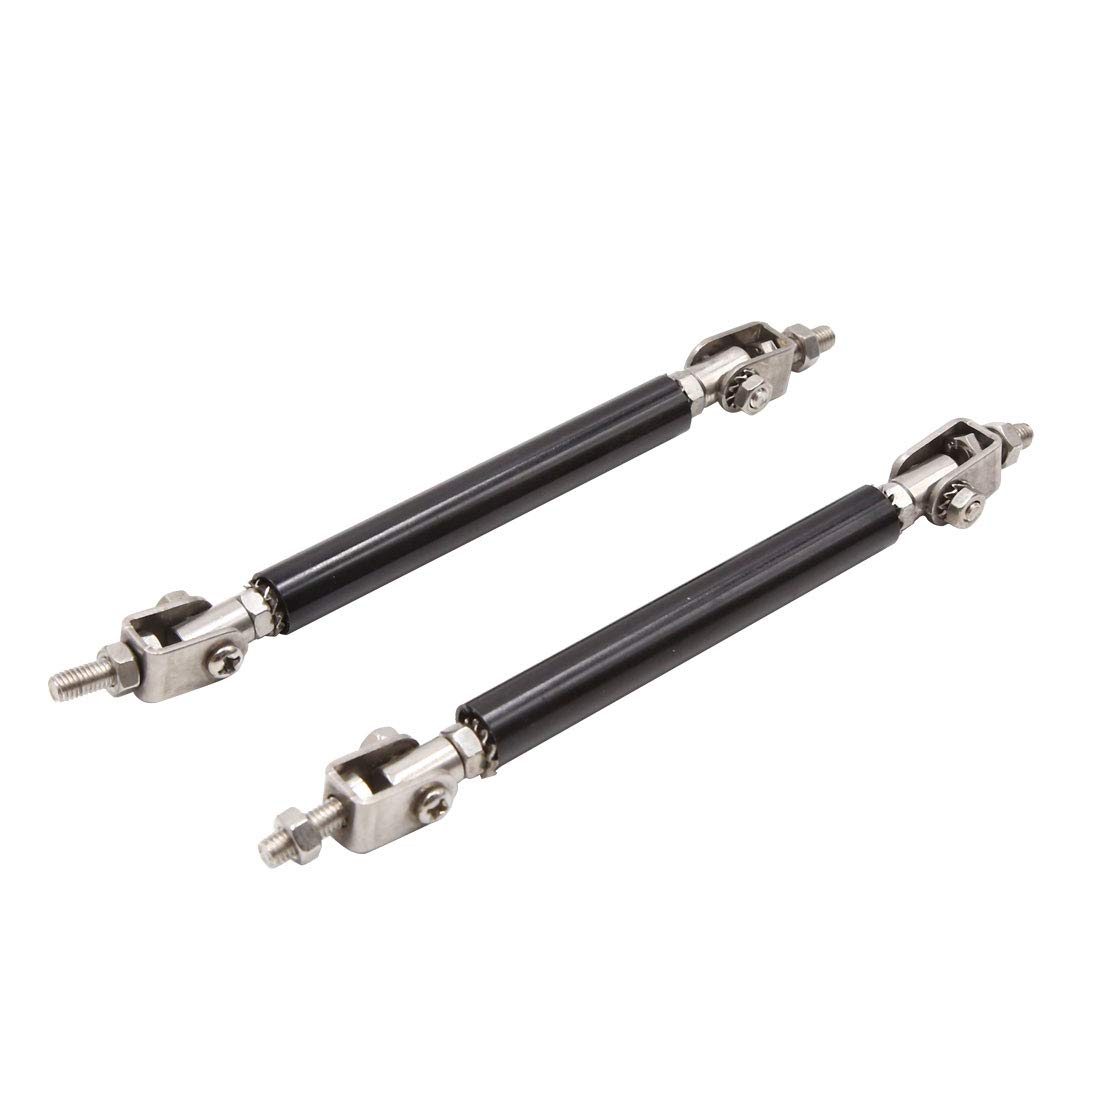 Uxcell a18061100ux0097 Bumper Tie Rod 2 Pack